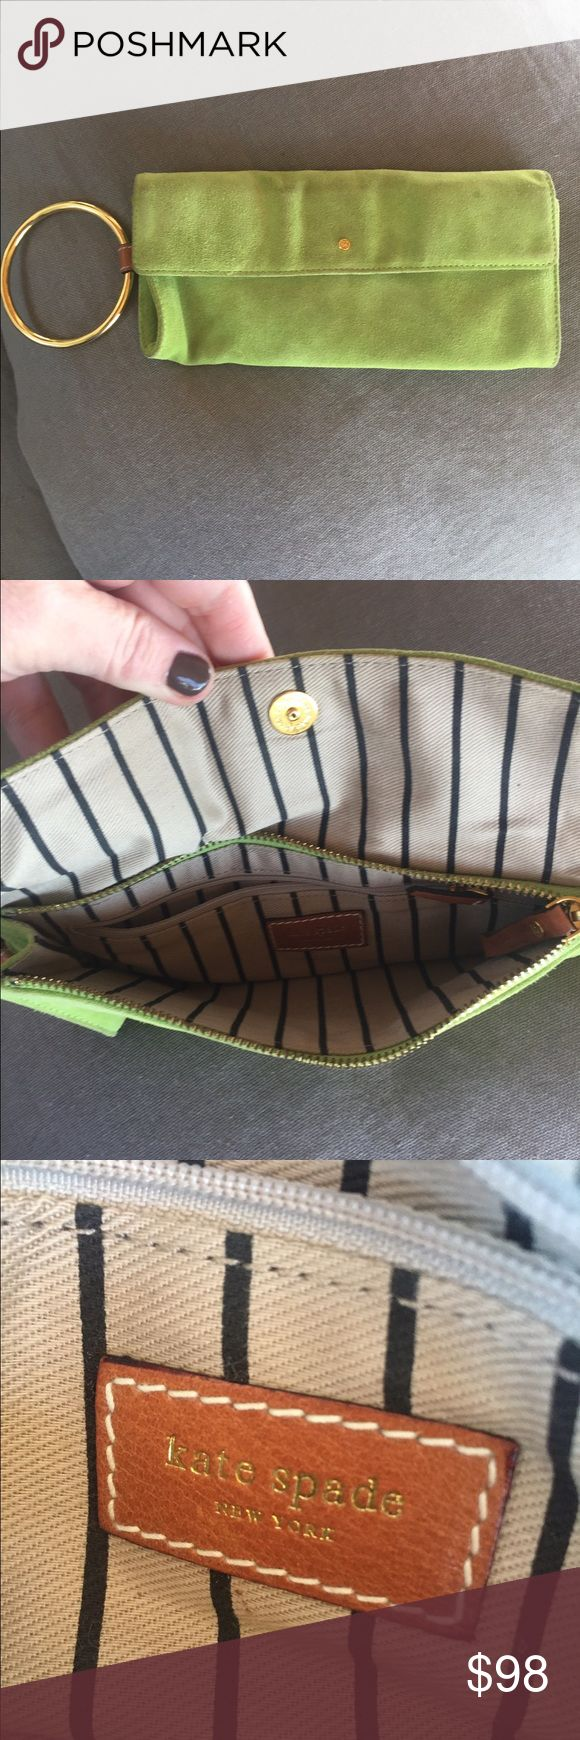 💥SALE💥 Kate Spade green suede clutch Today! Reduced $60! Authentic Kate Spade lime green clutch/purse wristlet with fun gold detail! Used, good condition! Make an offer or bundle with other bags in my close for -20% discount! kate spade Bags Clutches & Wristlets